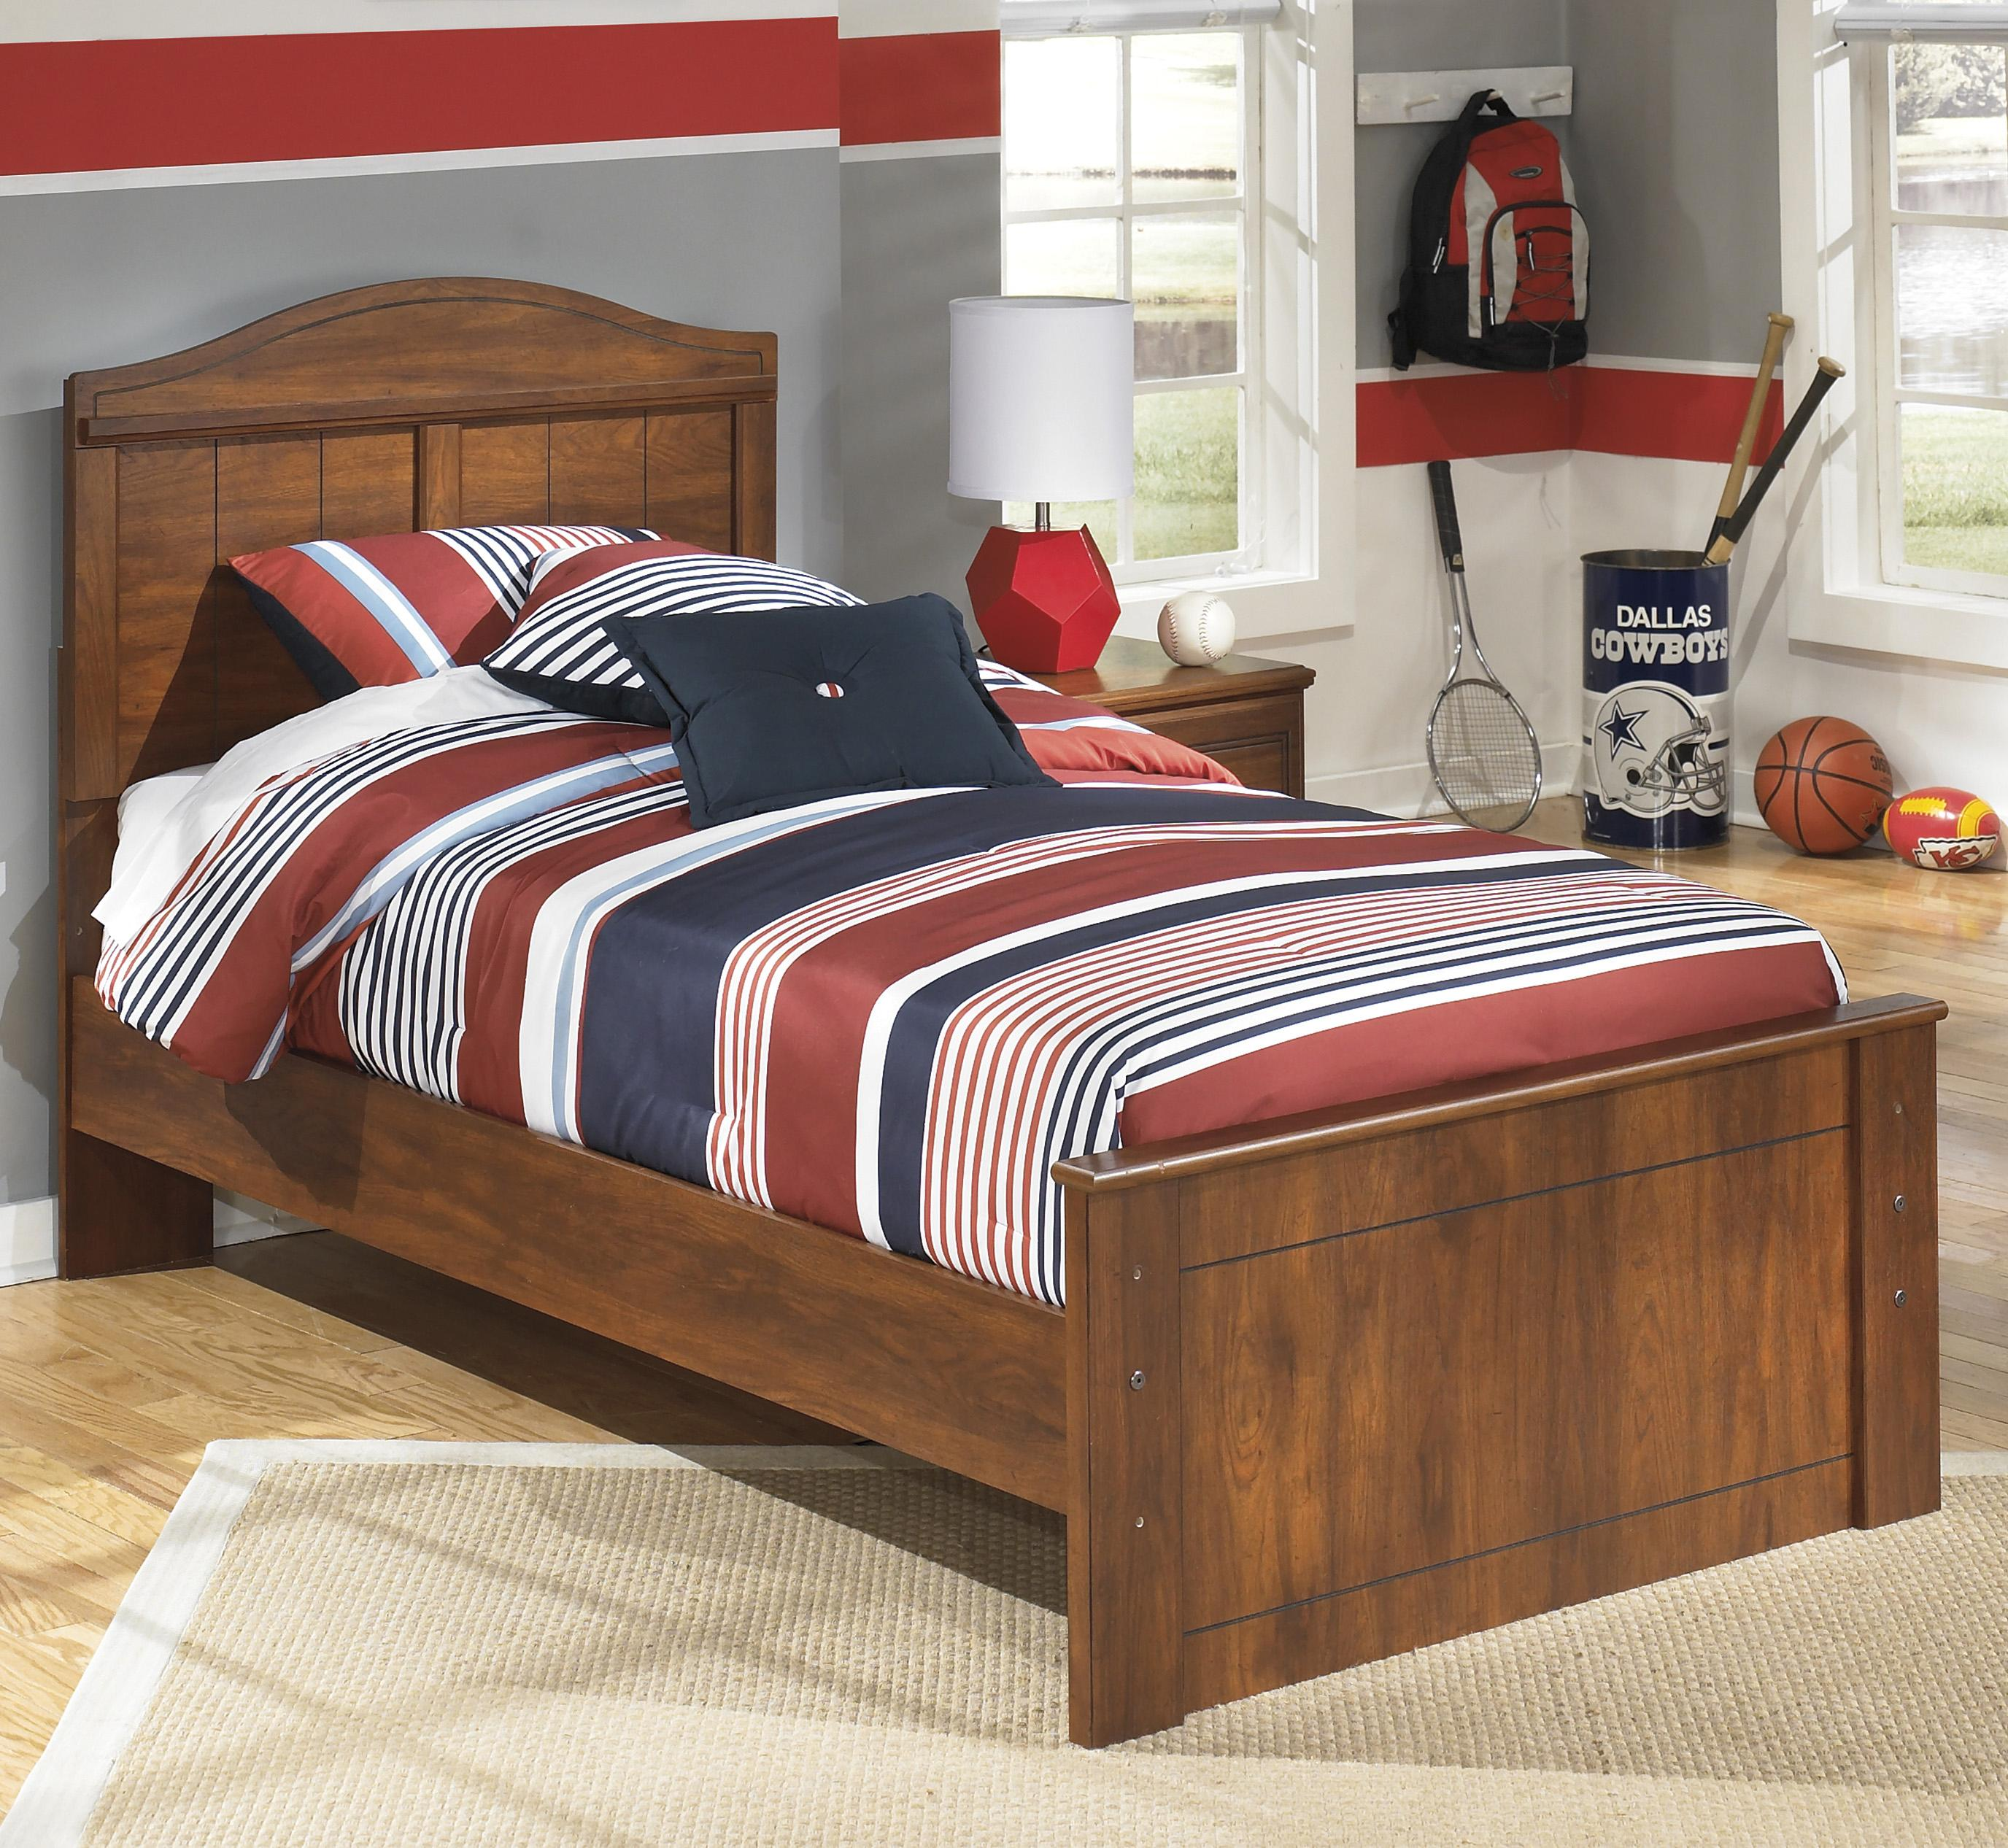 Ashley Furniture Signature: Signature Design By Ashley Barchan Twin Panel Bed With